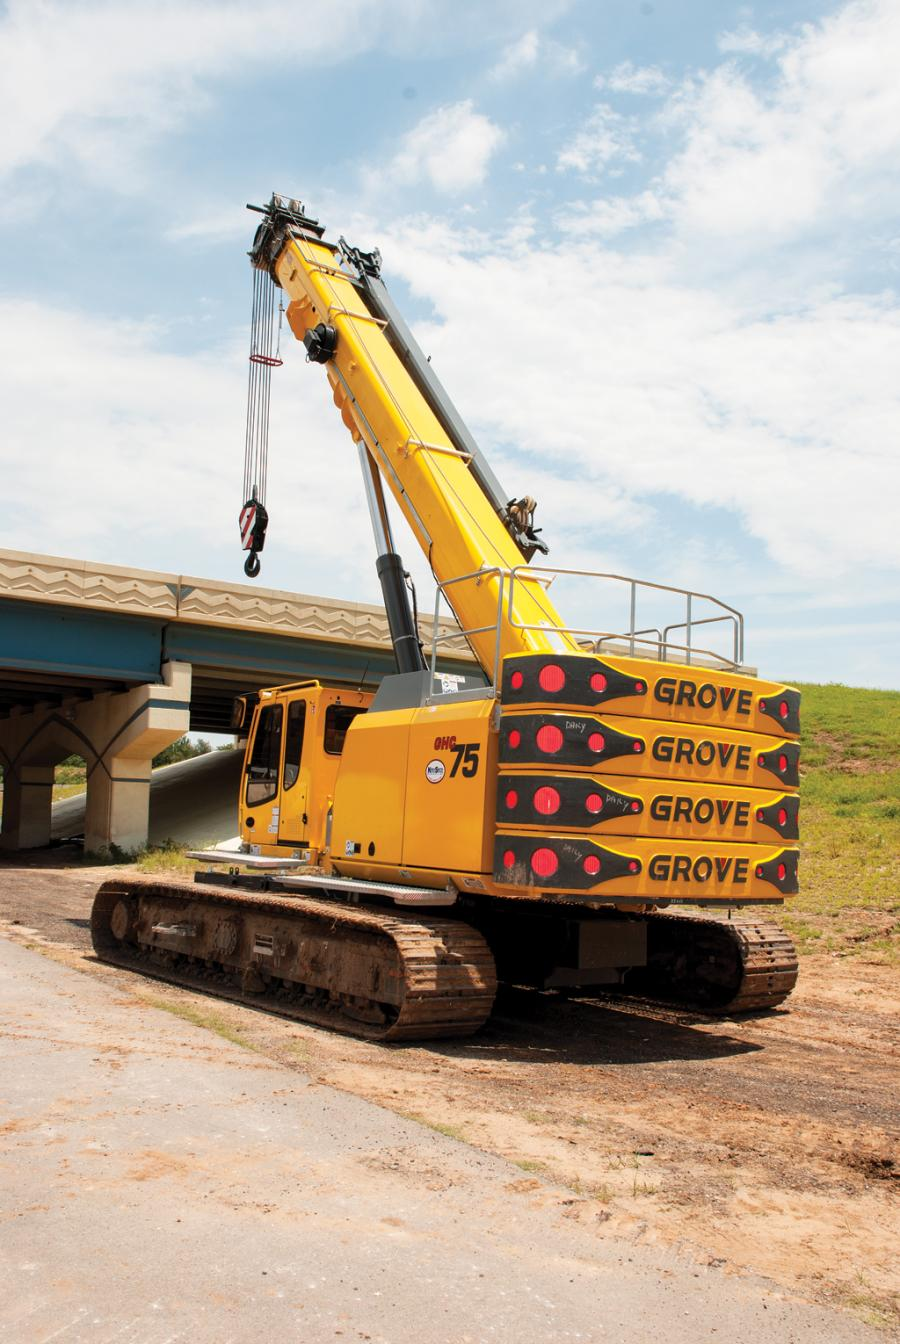 Manhattan Road & Bridge uses a Grove GHC75 rented from Kirby-Smith Machinery for drilled-shaft installation. The 70-ton-capacity crawler features a robust, four-section main boom that extends from 36 to 118 ft. (11 to 36 m) and can telescope under load.